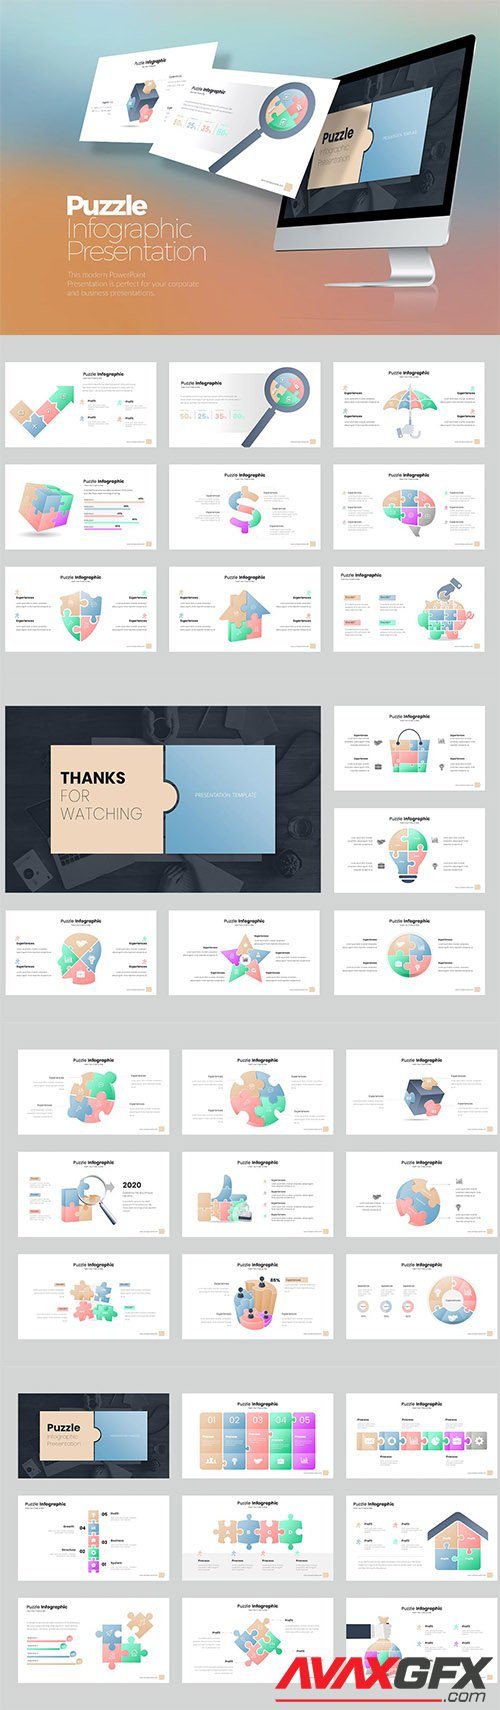 Puzzle Infographic PowerPoint, Keynote, Google Slides